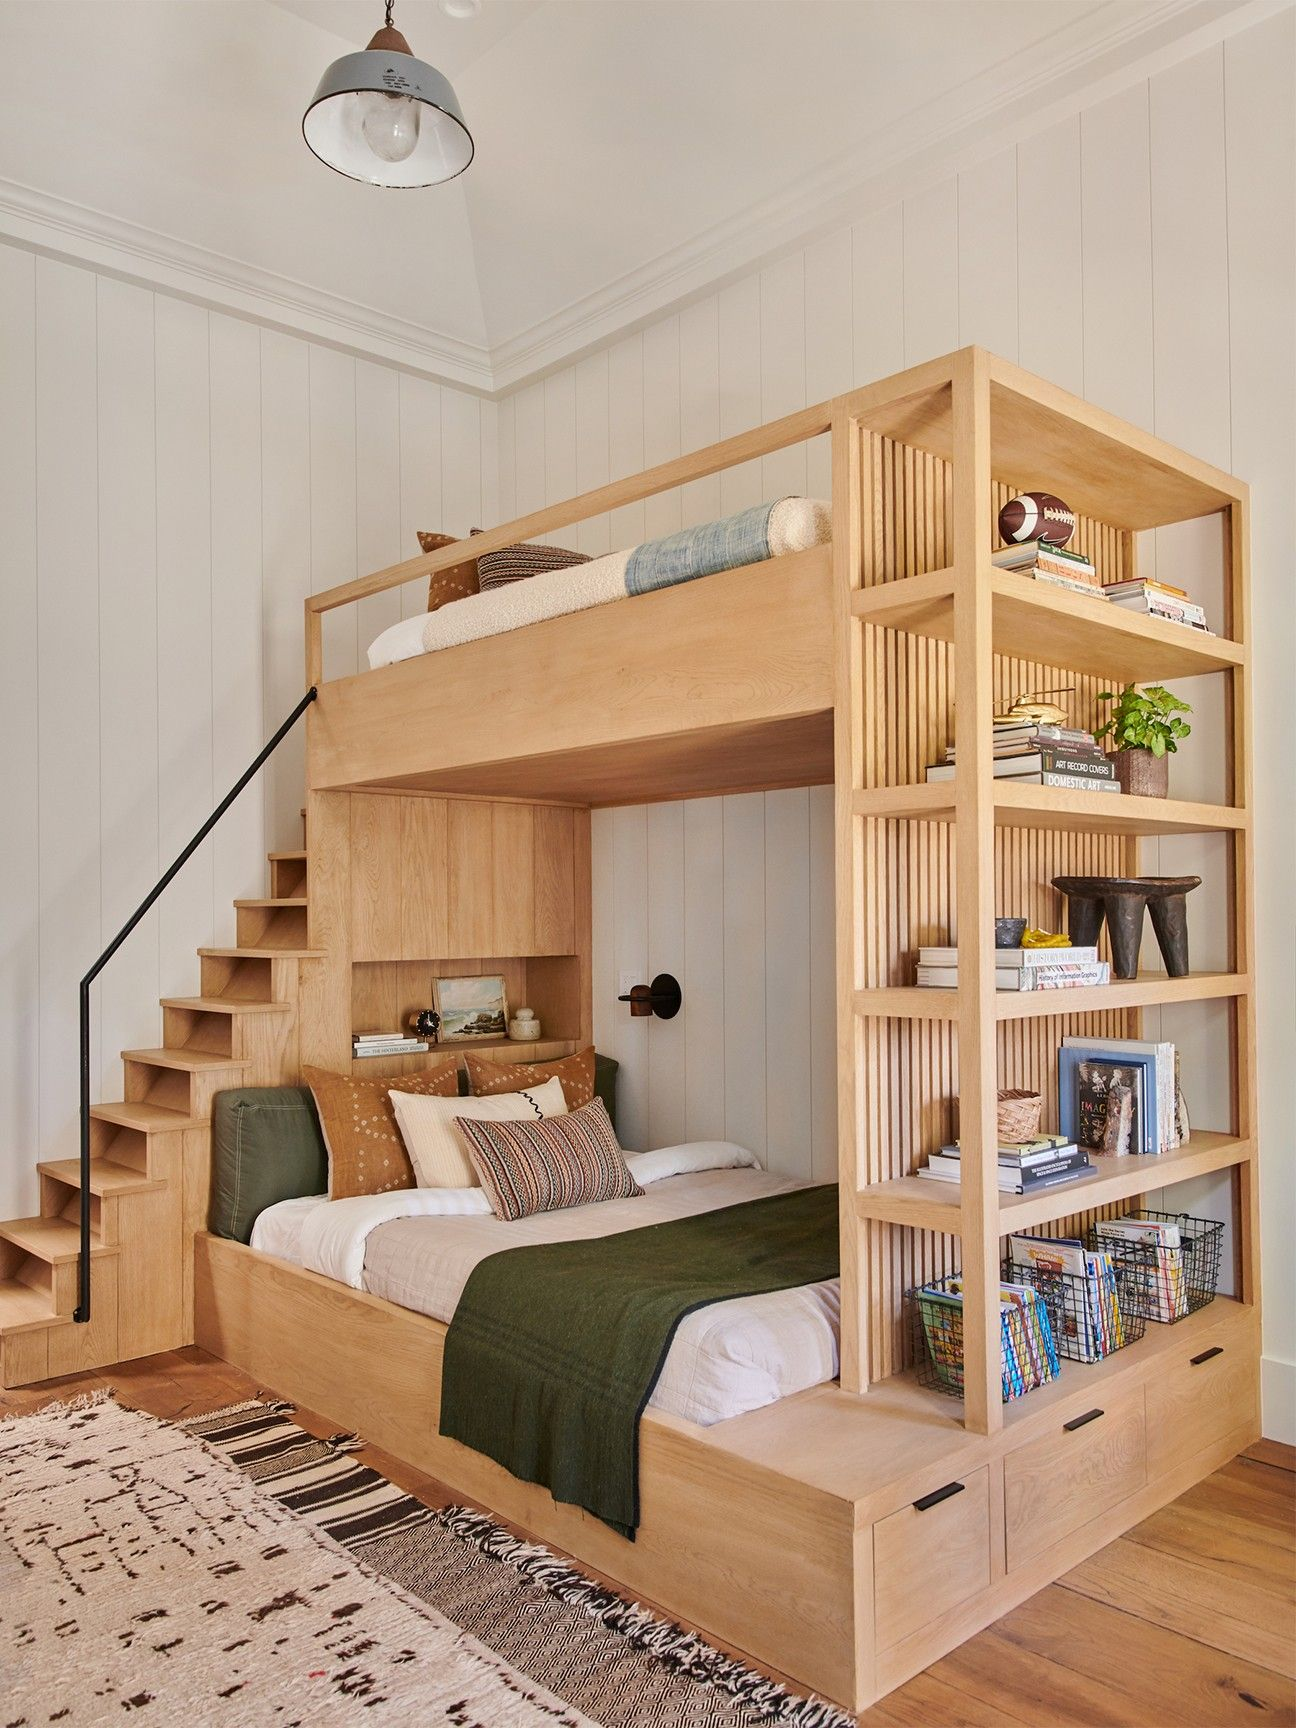 8 Bunk Bed Ideas Because Your Kids Nursery Deserves Better Bunk Bed Rooms Bunk Beds Built In Bunk Bed Designs